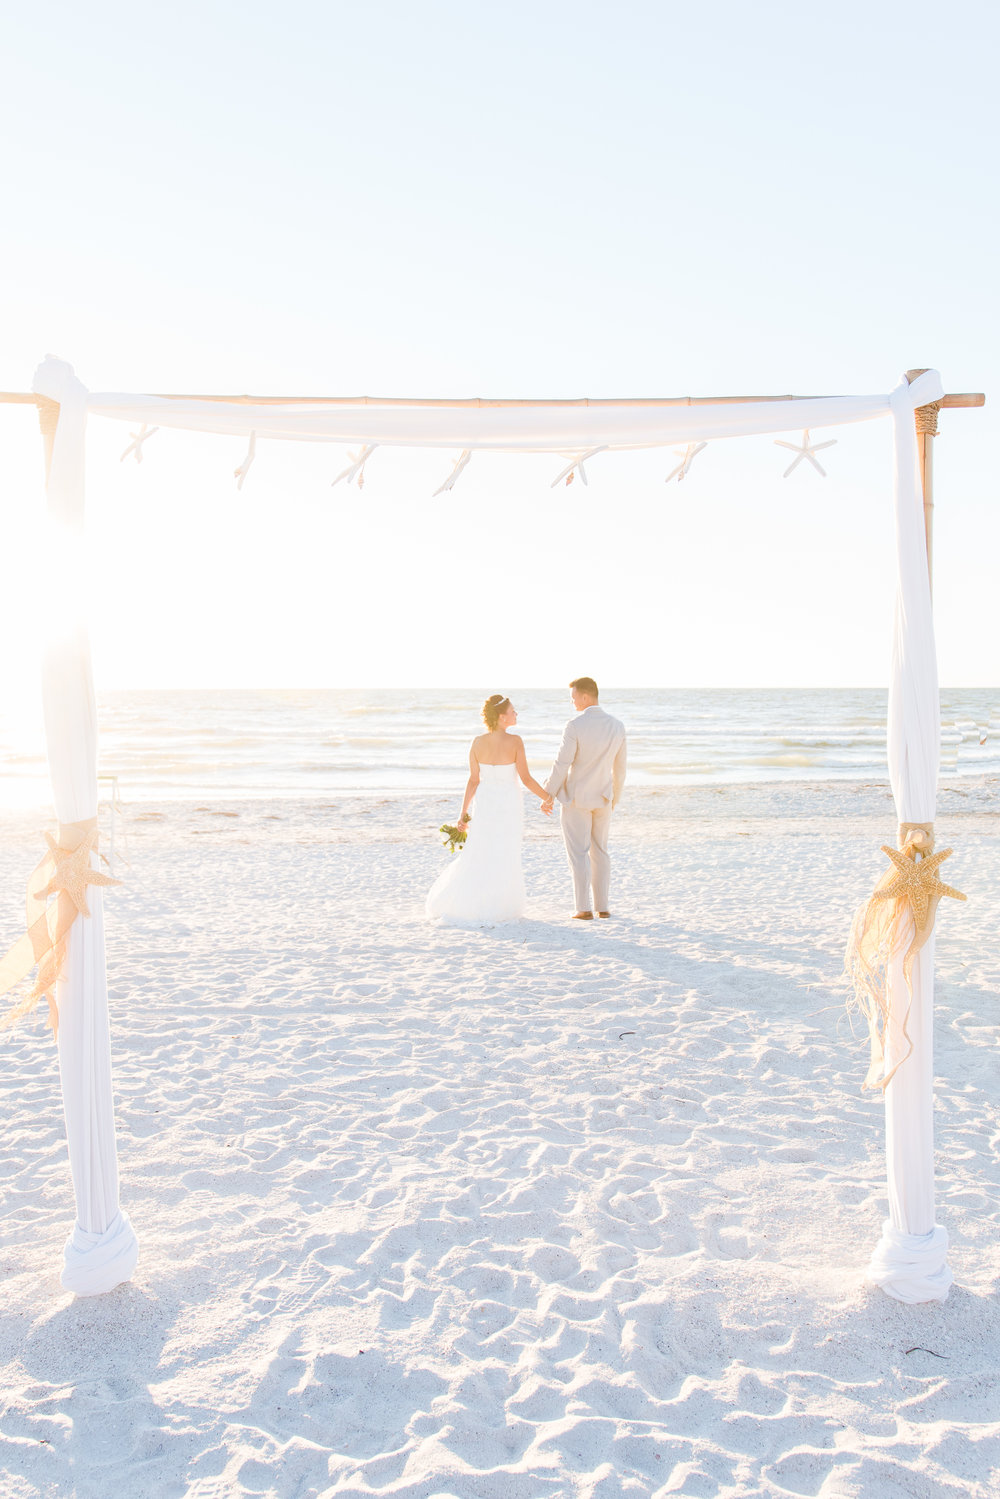 Bride and groom, St.Pete wedding photographer, St.Pete wedding, St.Pete beach, tide the knot beach weddings, mir salgado photography, Tampa wedding photographer